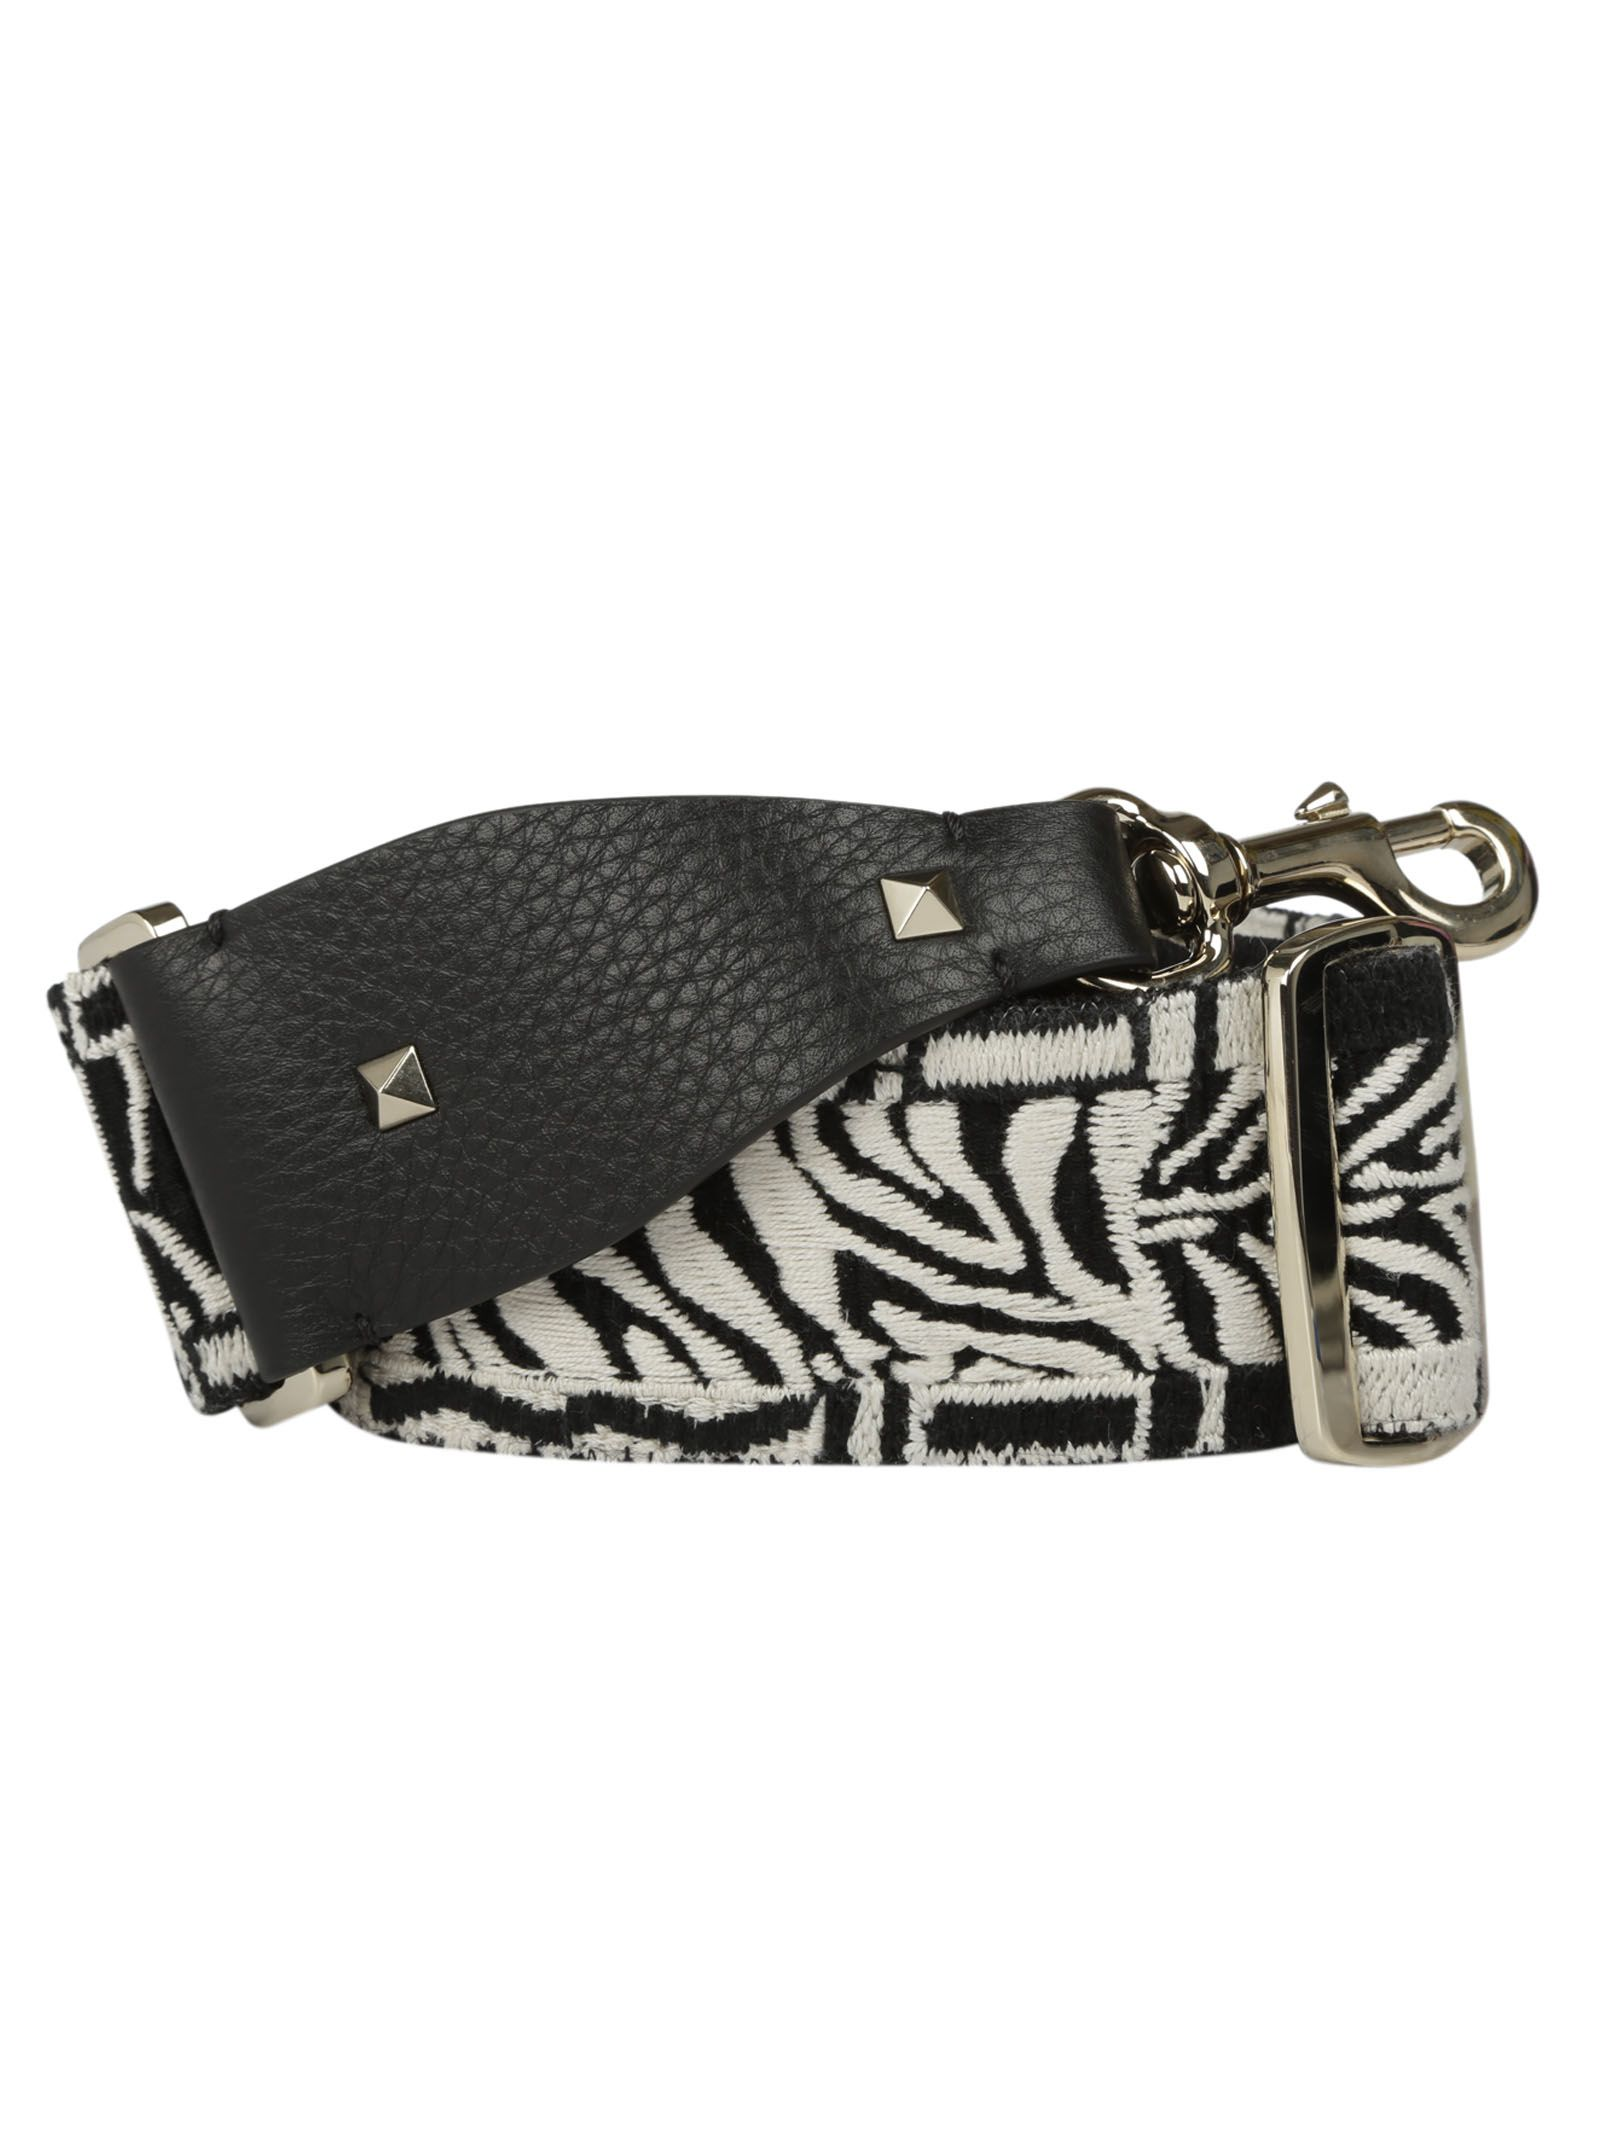 Valentino Garavani Zebra Embroidered Bag Strap